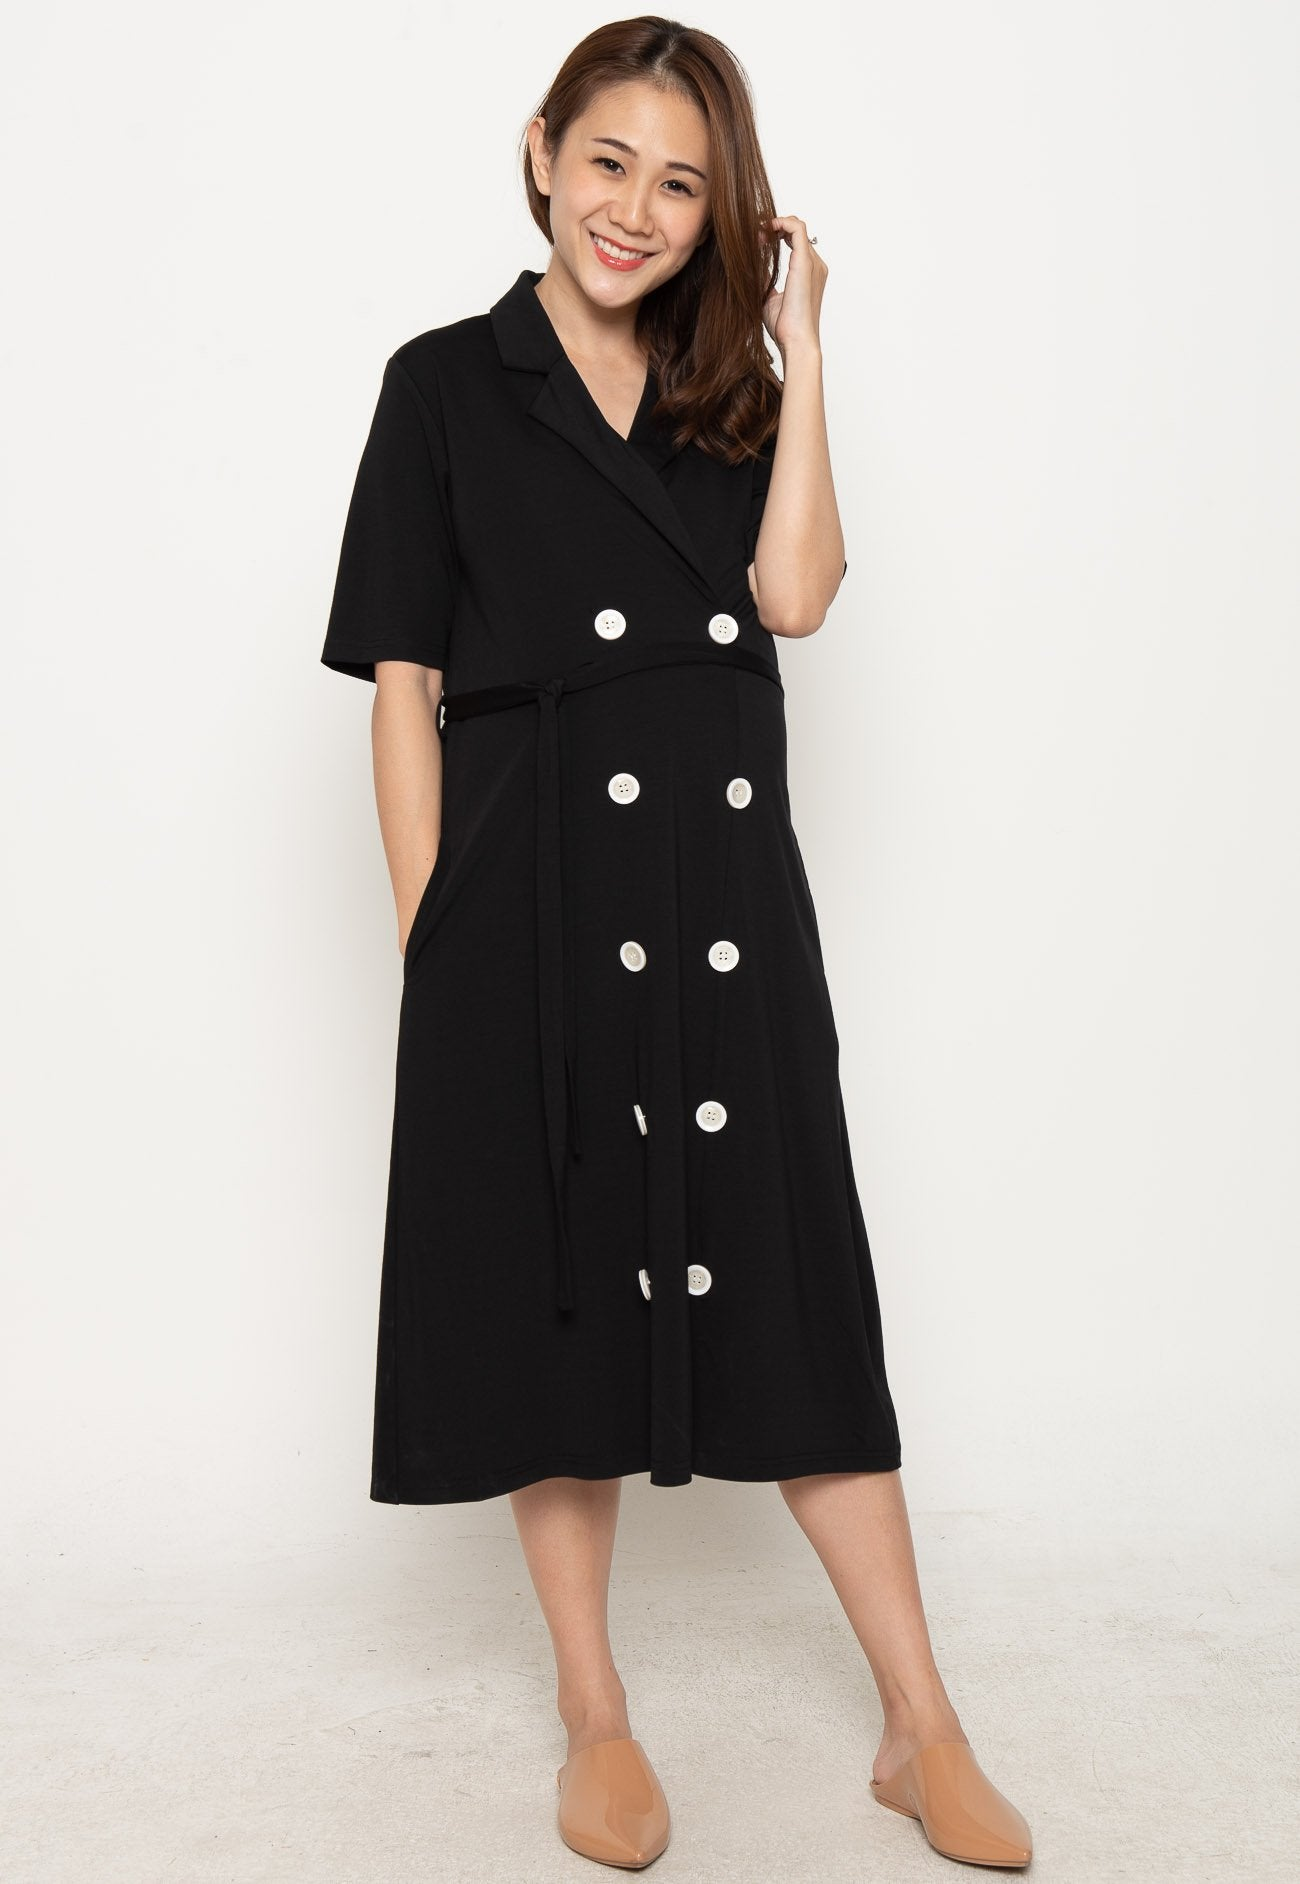 2a0b5dbd6dc1d ... Annora Double Buttons Nursing Dress in Black by Jump Eat Cry - Maternity  and nursing wear ...